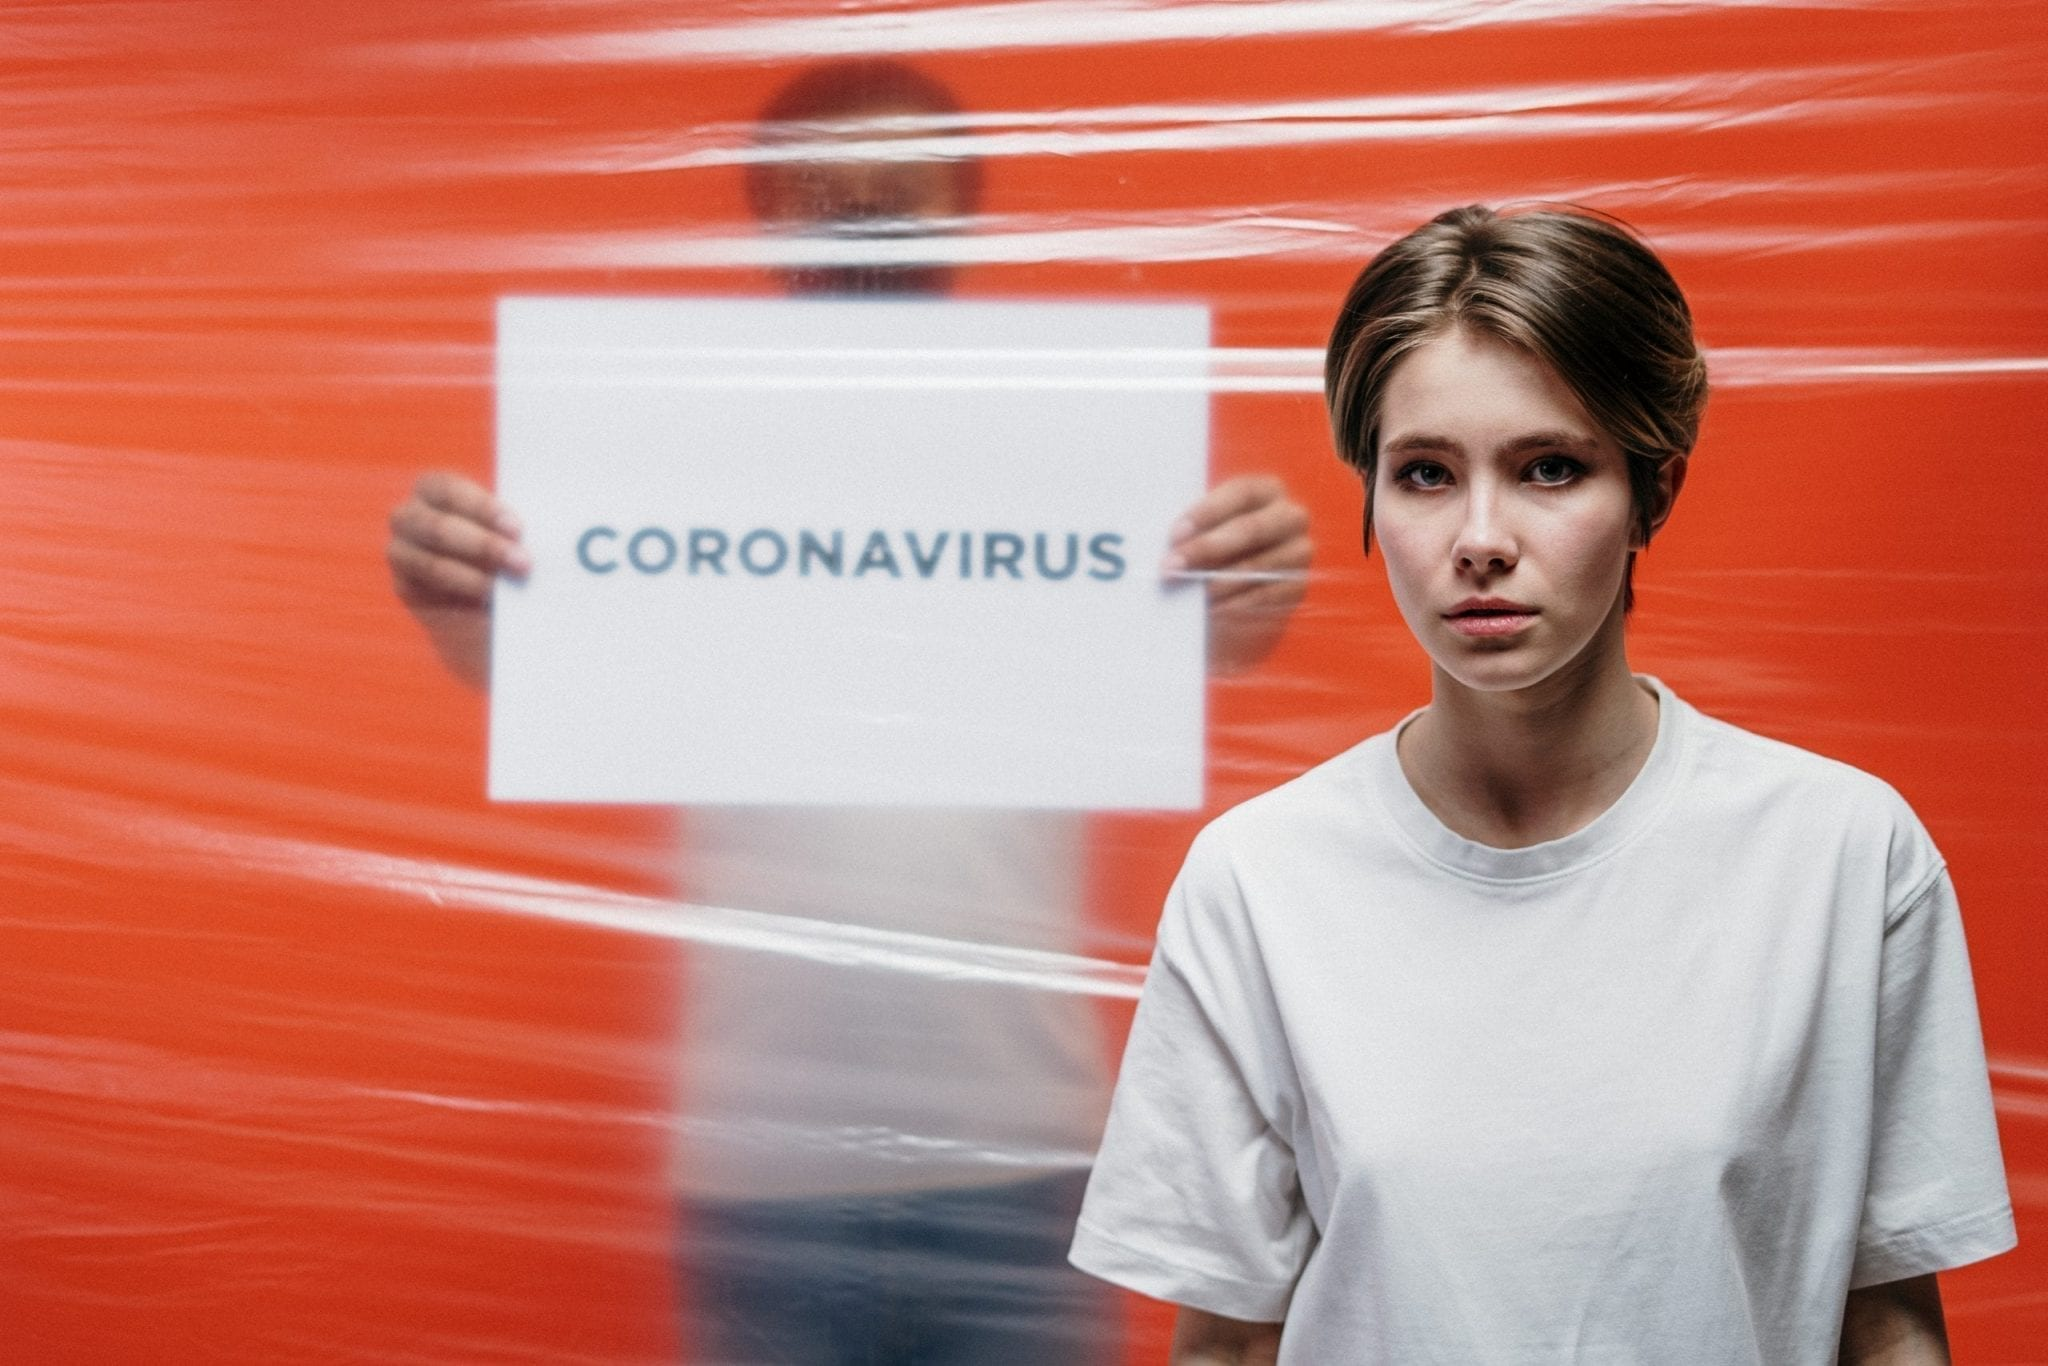 Here's how to cope while in covid-19 quarantine